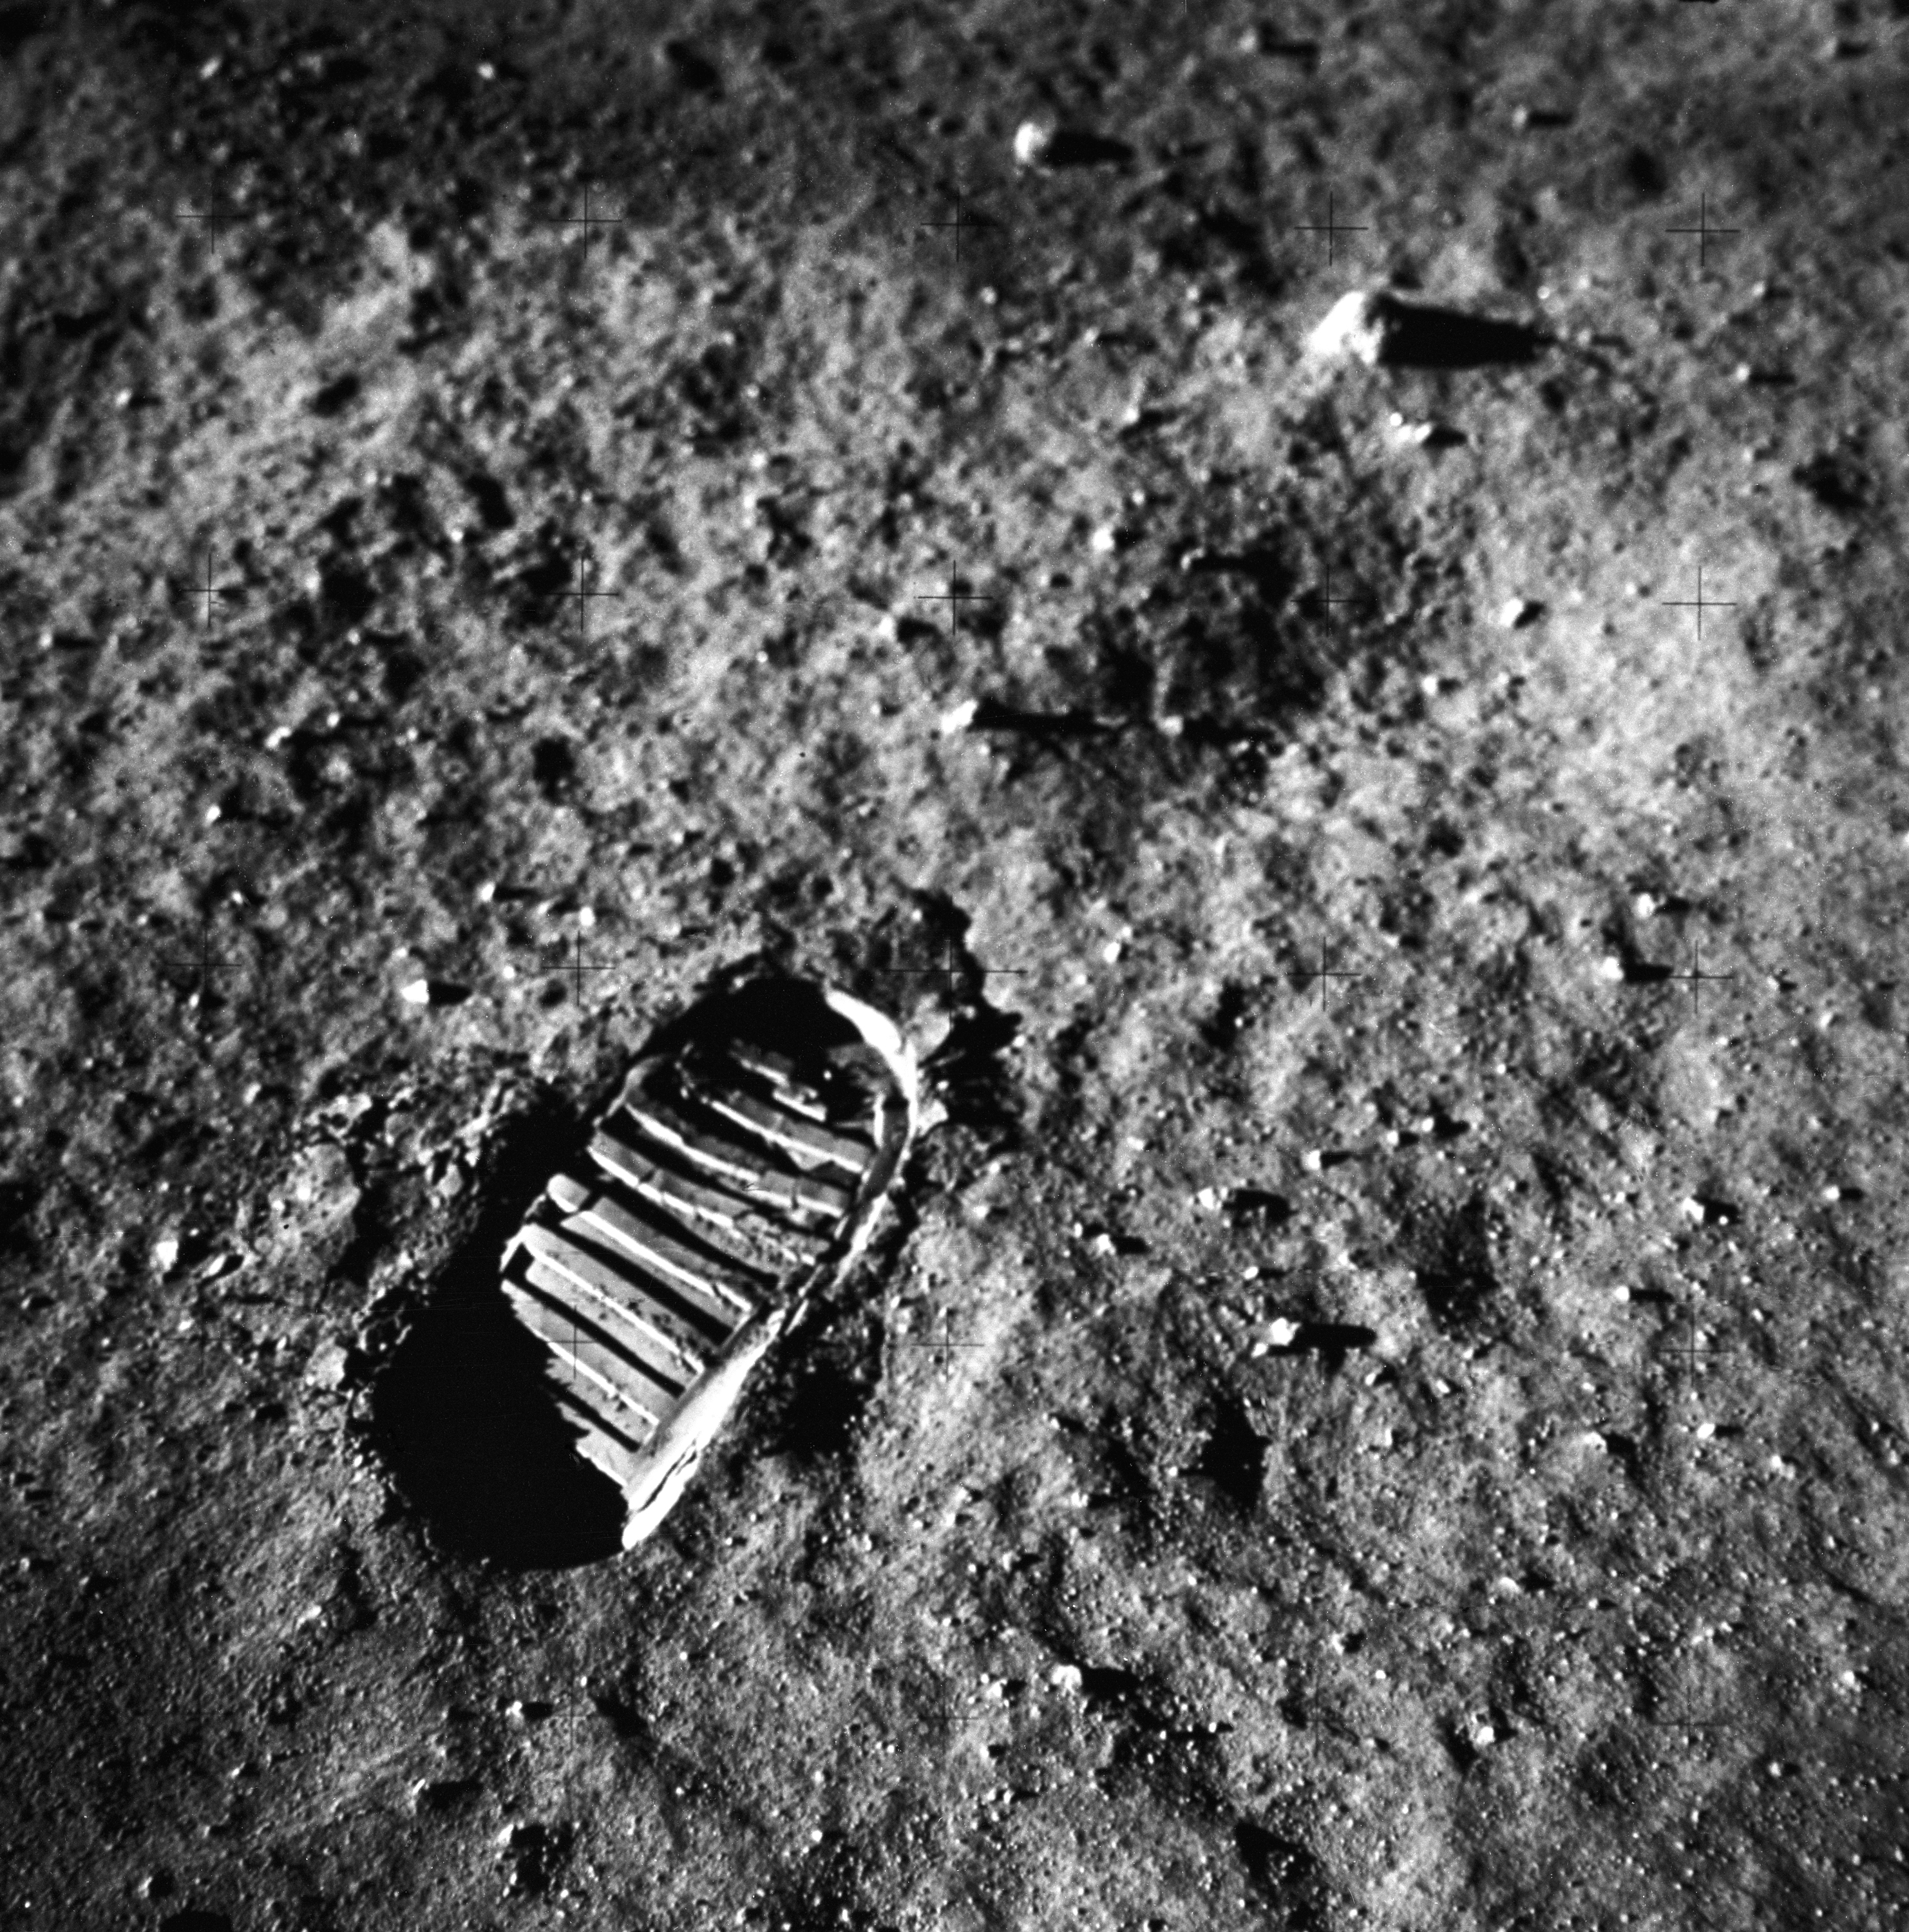 A close-up view of an astronaut's footprint in the lunar soil, created 1969-07-20